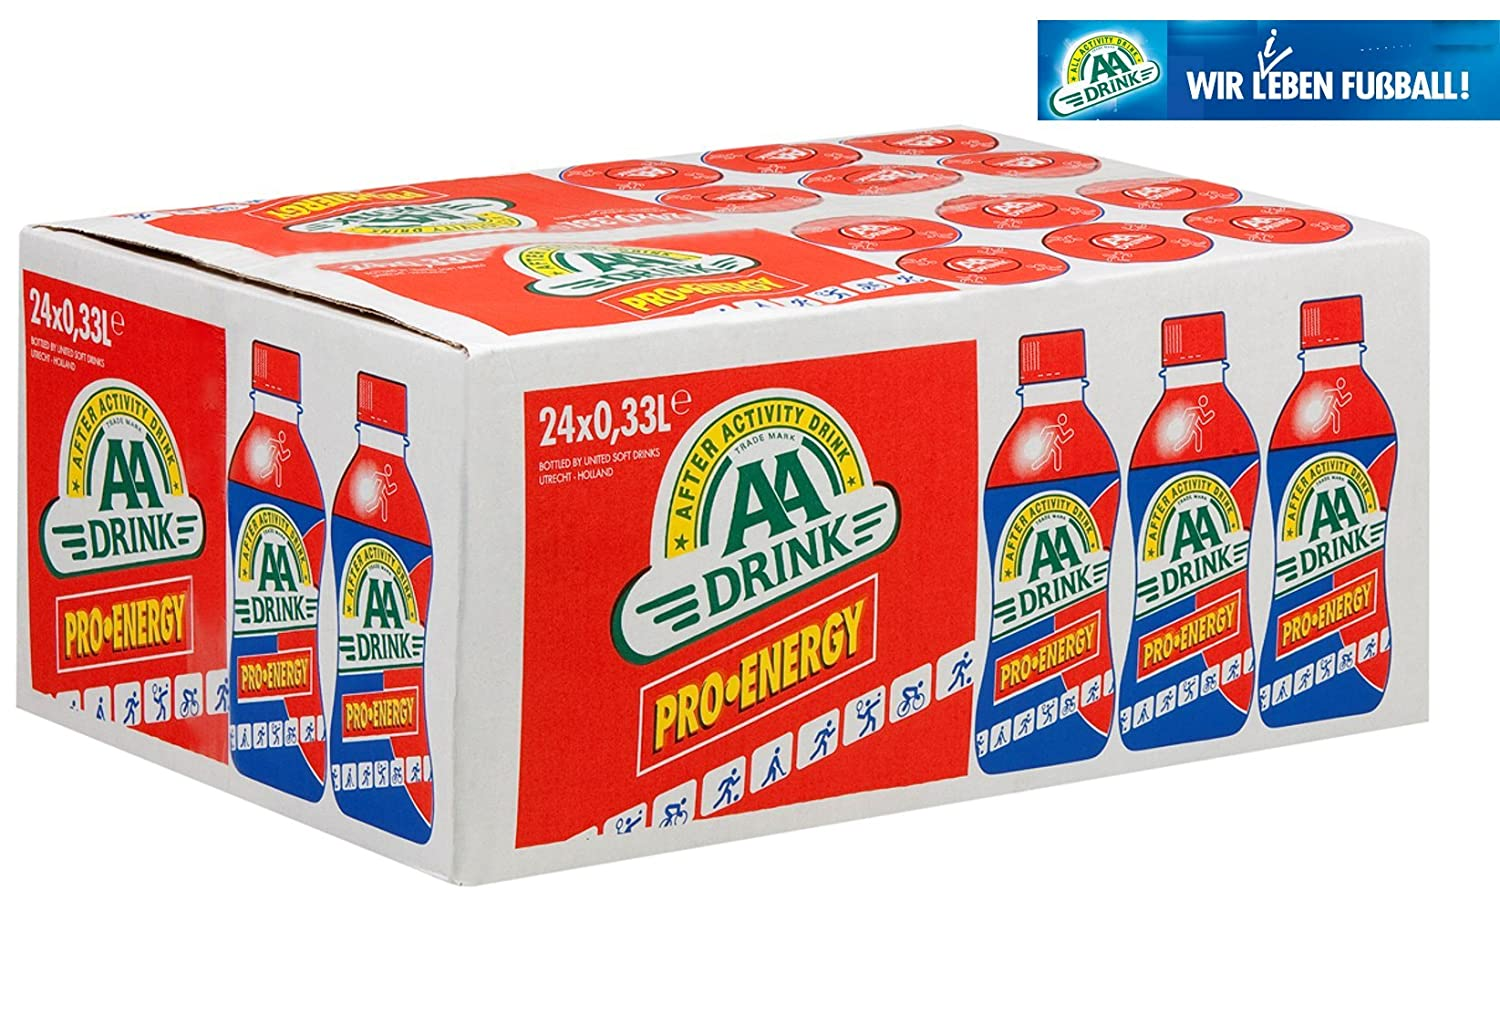 AA Drink Pro Energy 24x33cl hypotonisches Sportgetränk (inkl. 6 ...